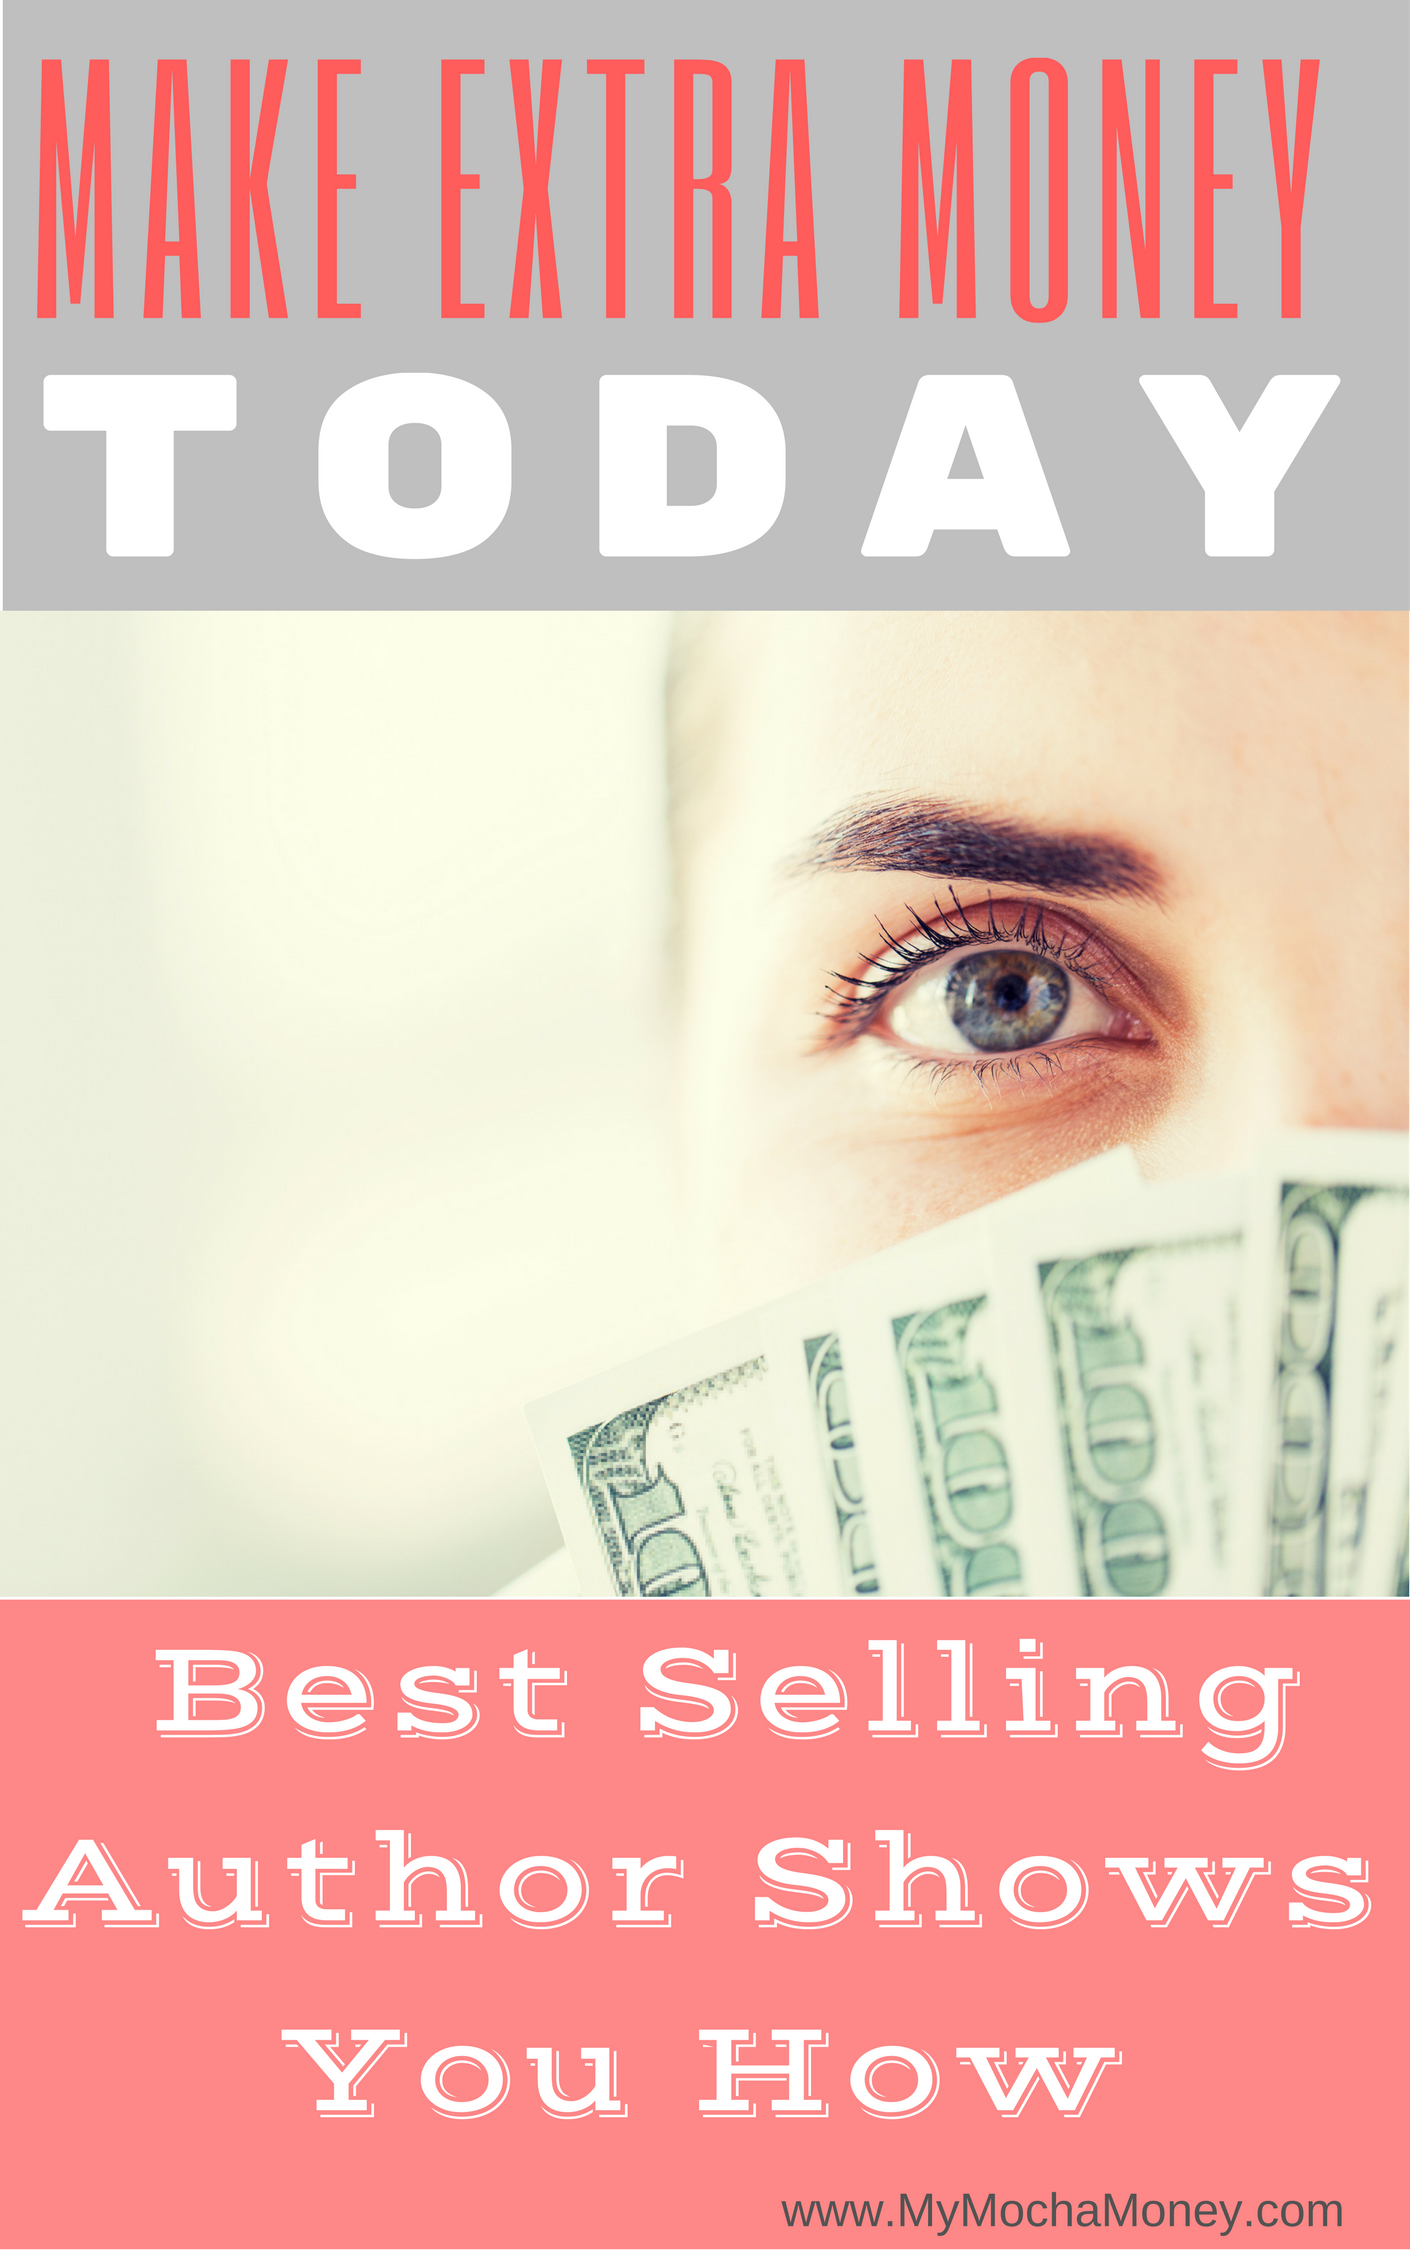 Make Extra Money Today: Best-Selling Author Shows You How